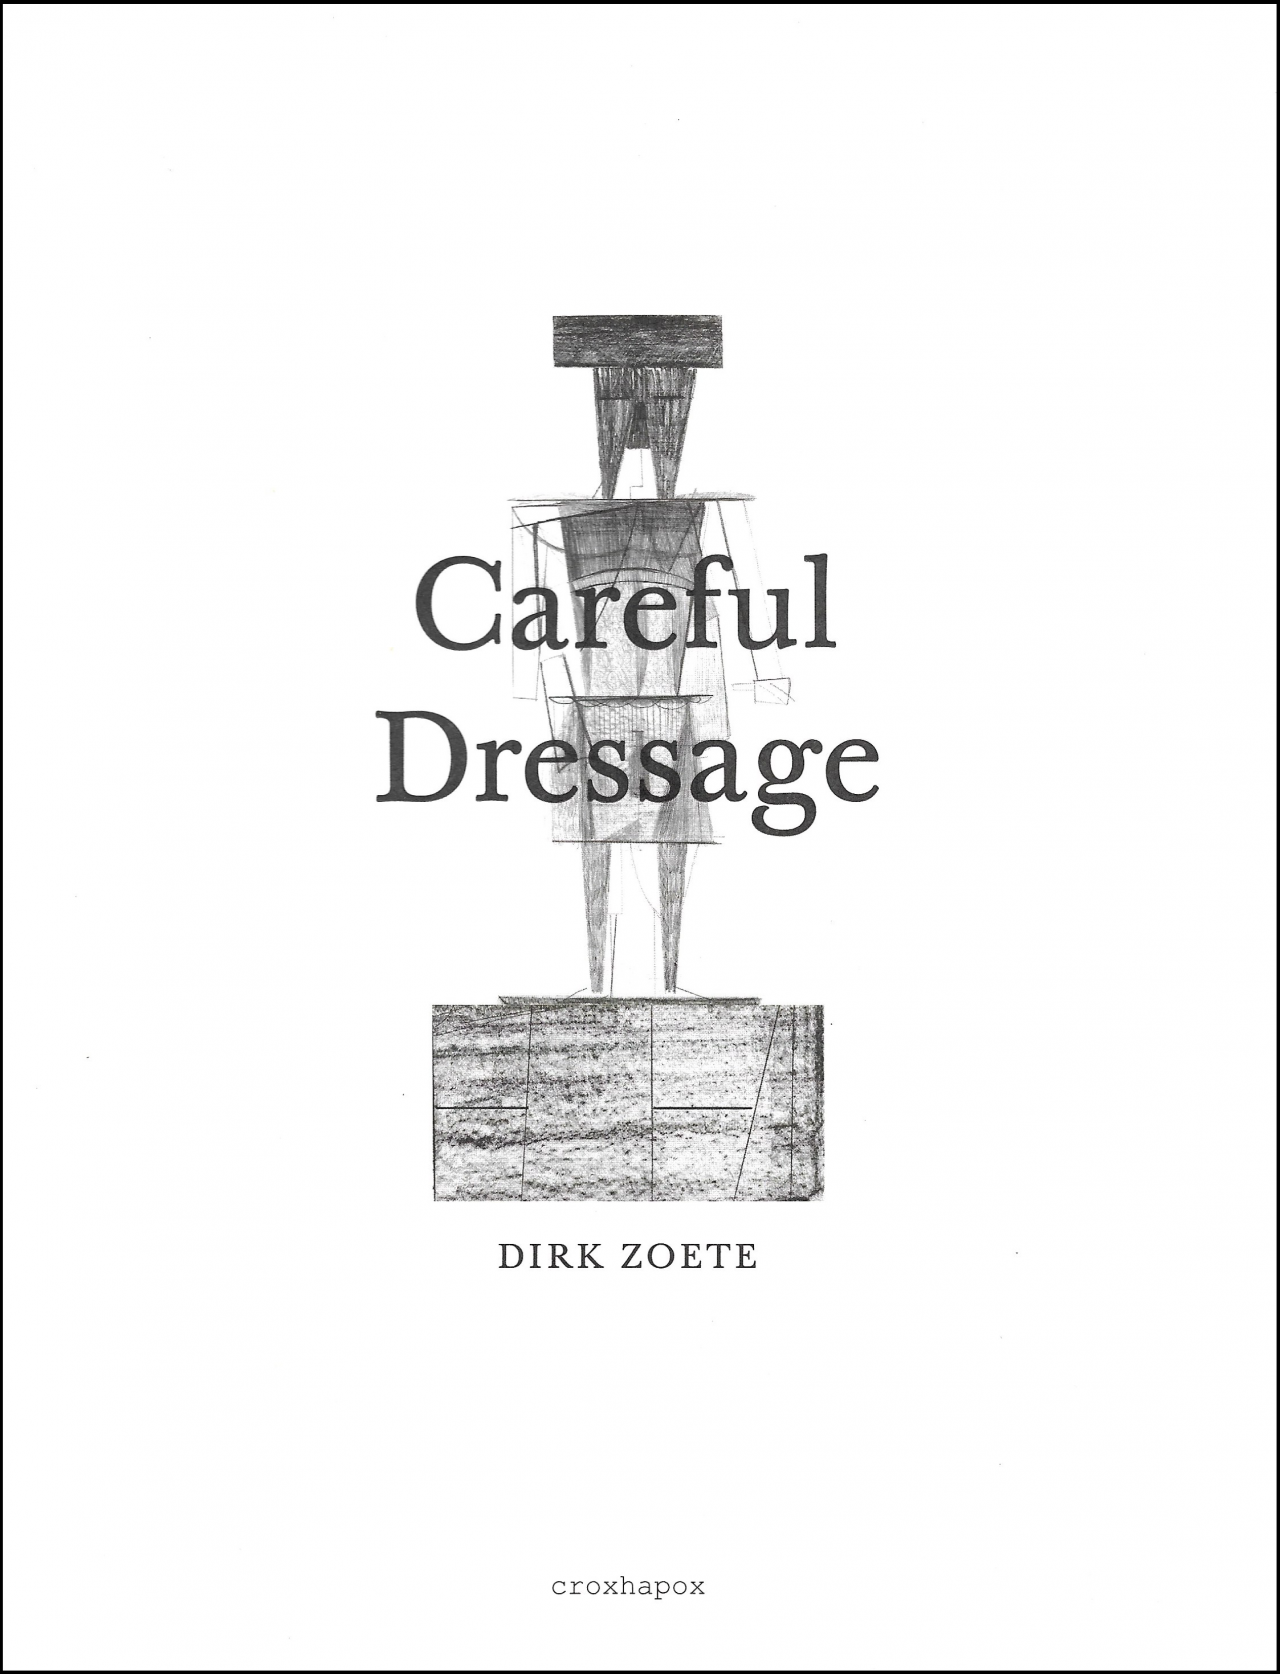 Dirk Zoete: Careful Dressage